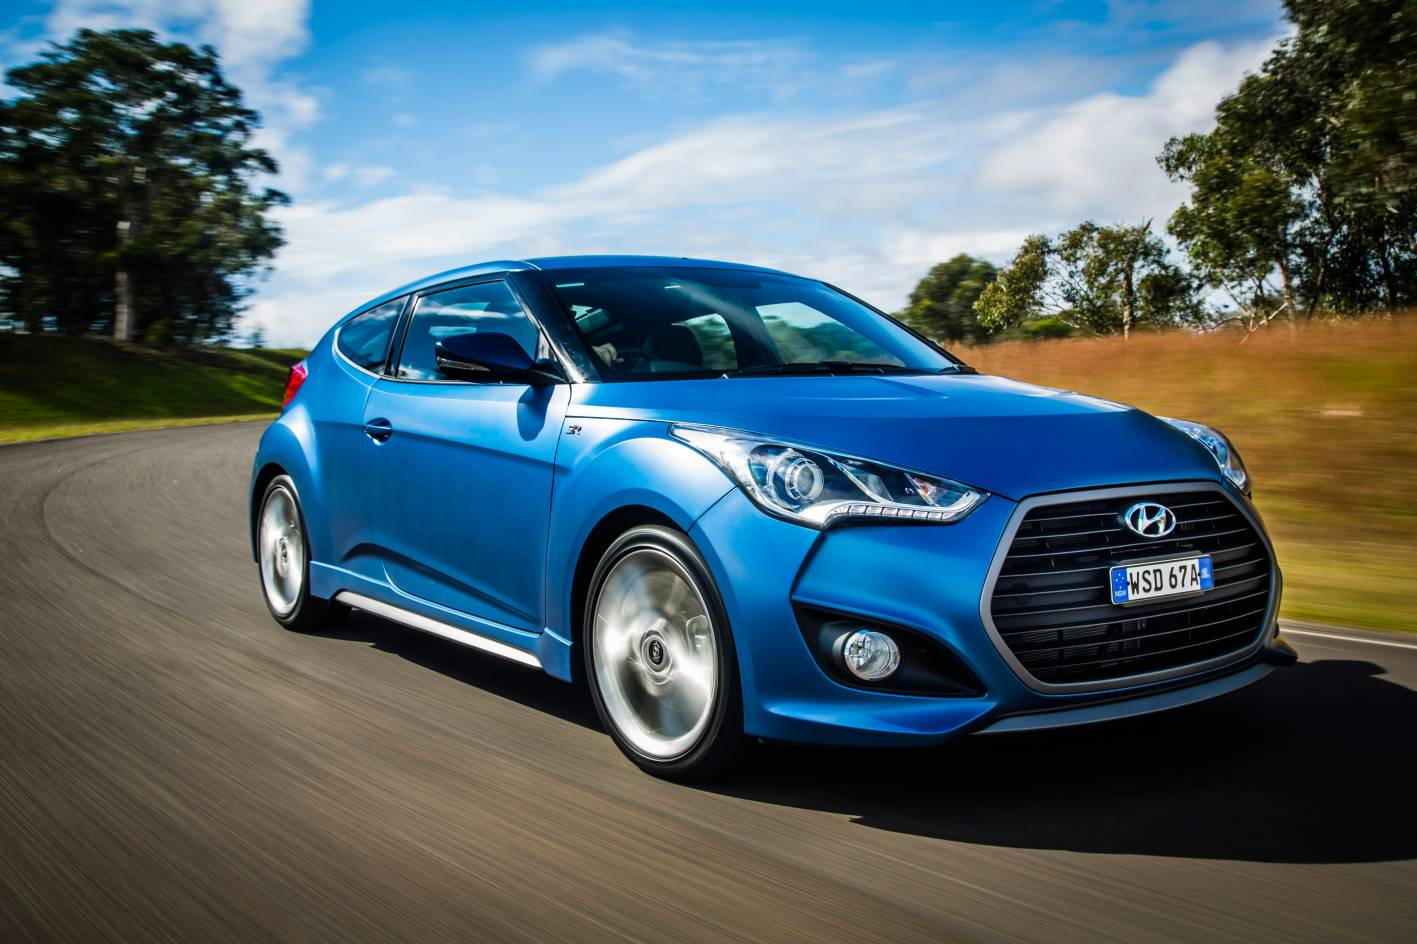 2016 hyundai veloster pricing and specification. Black Bedroom Furniture Sets. Home Design Ideas